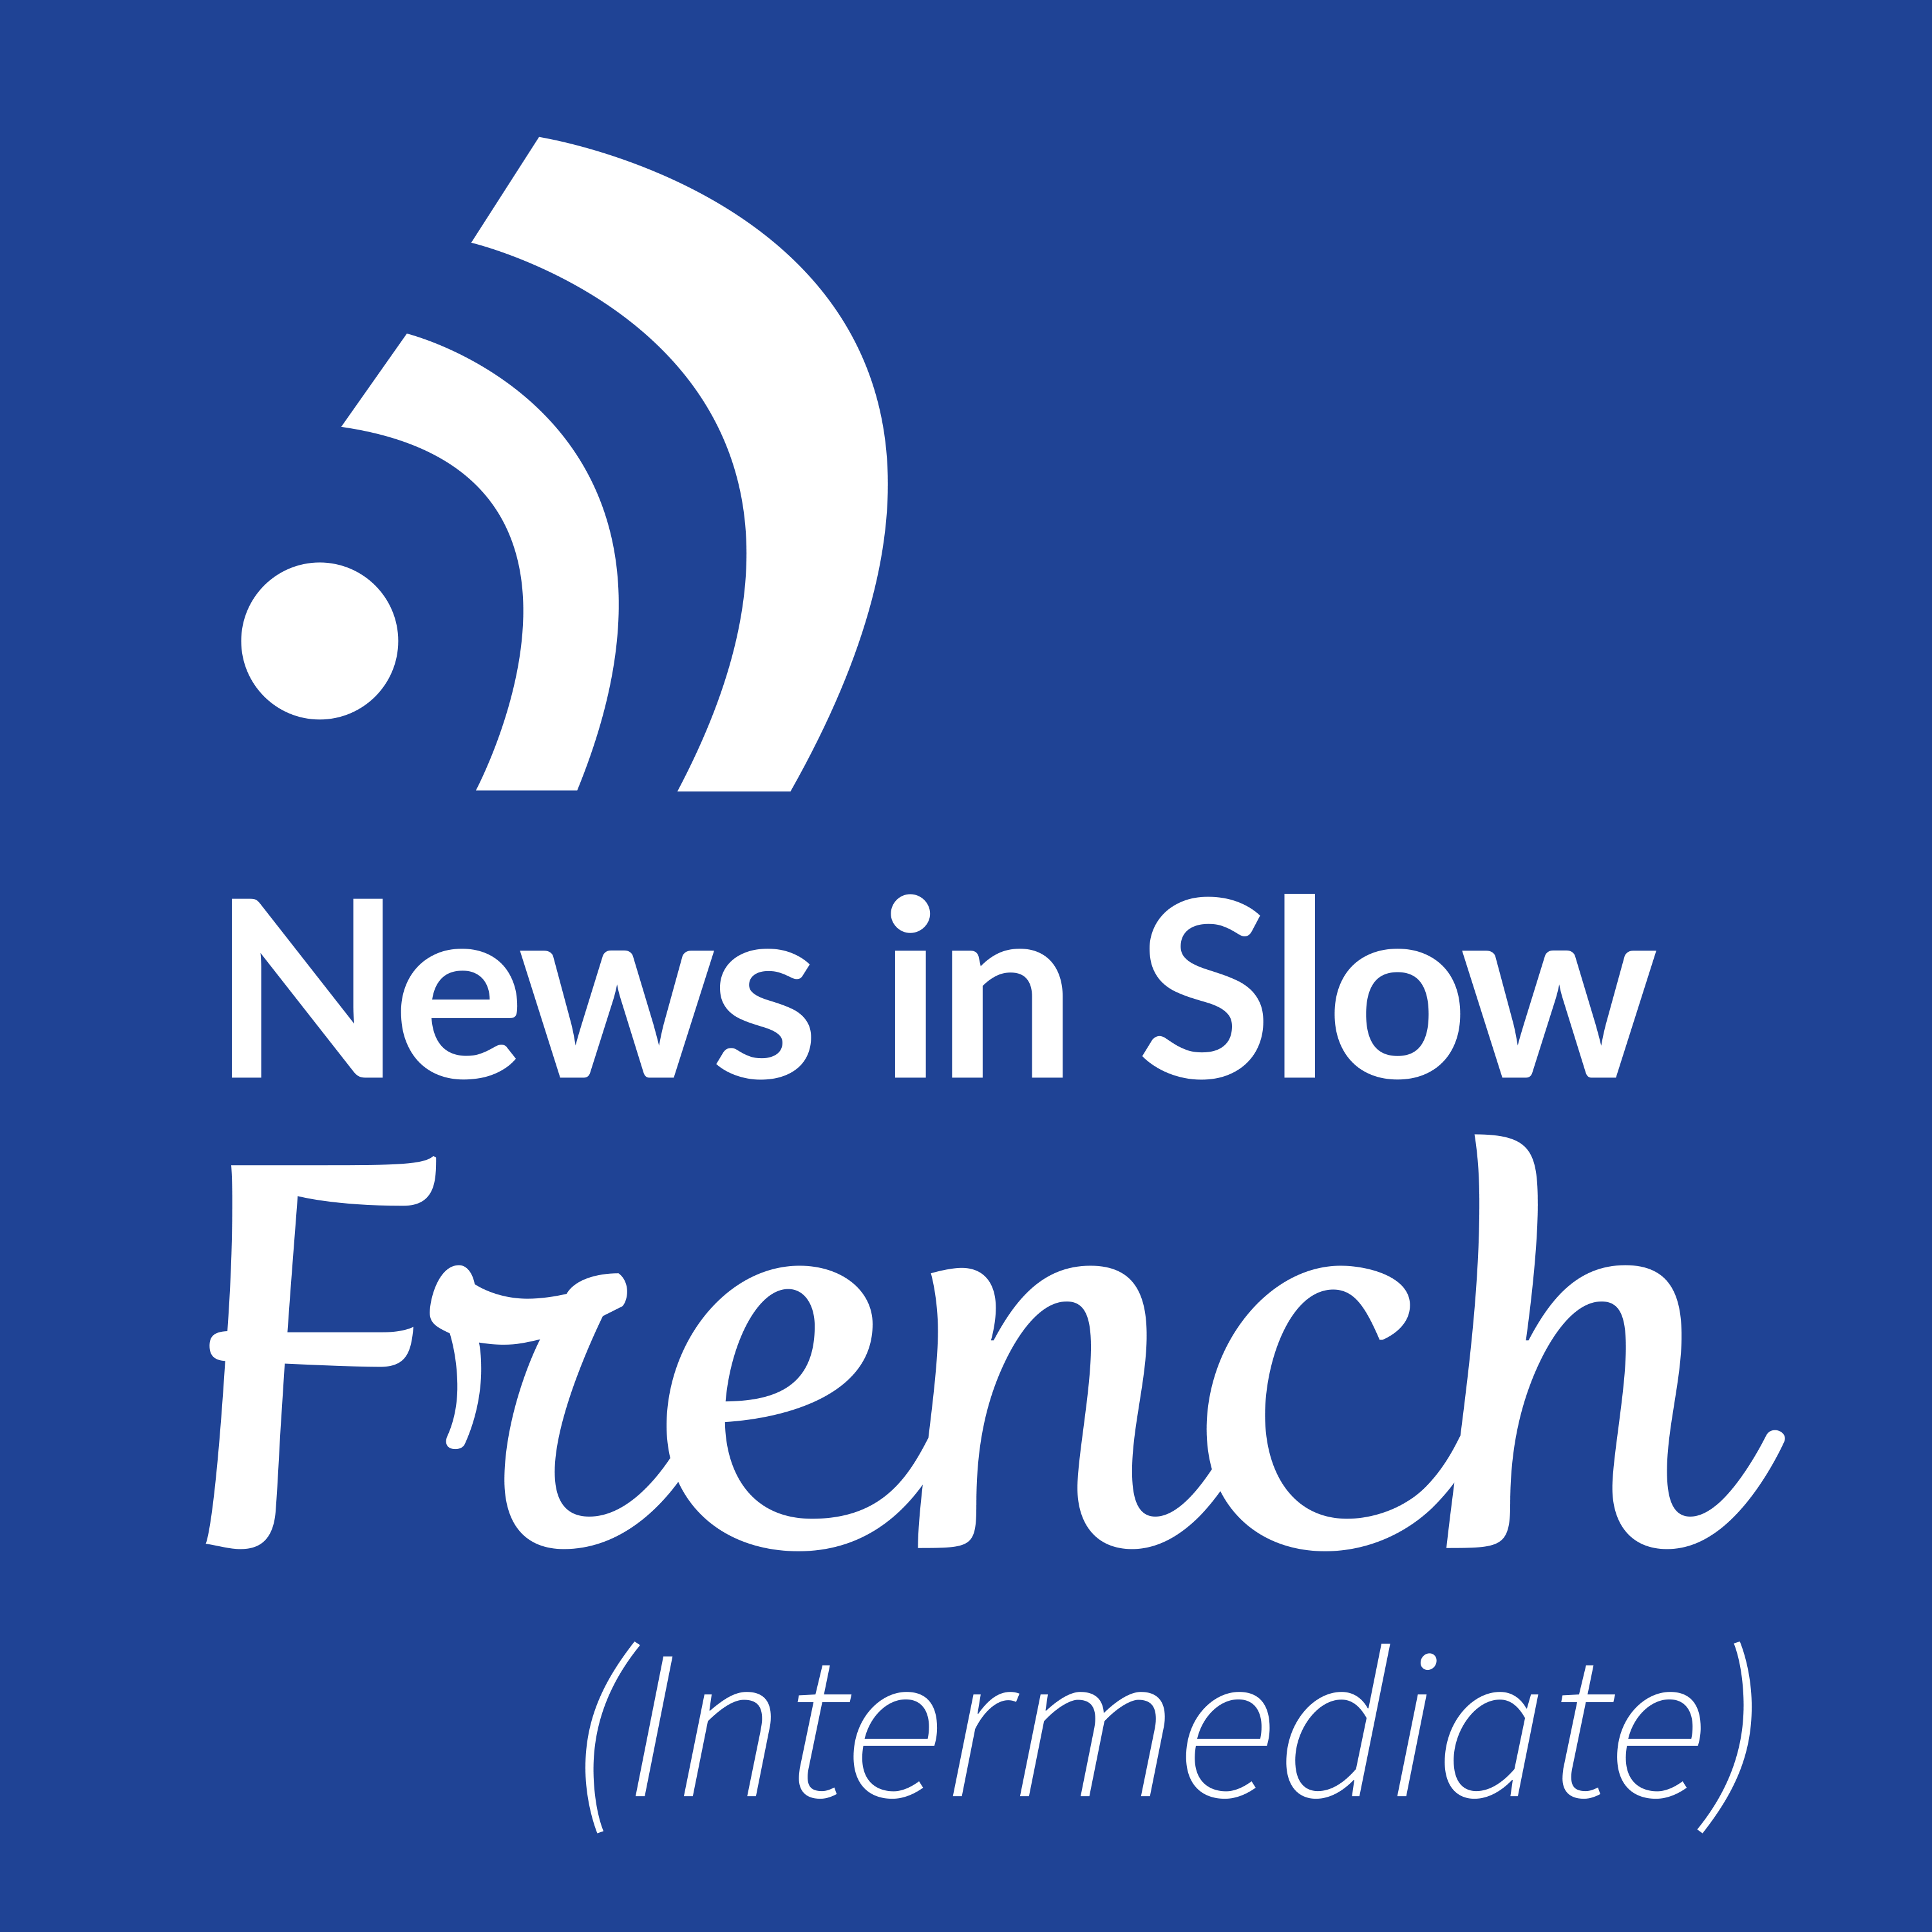 News in Slow French #260 - Learn French through current events